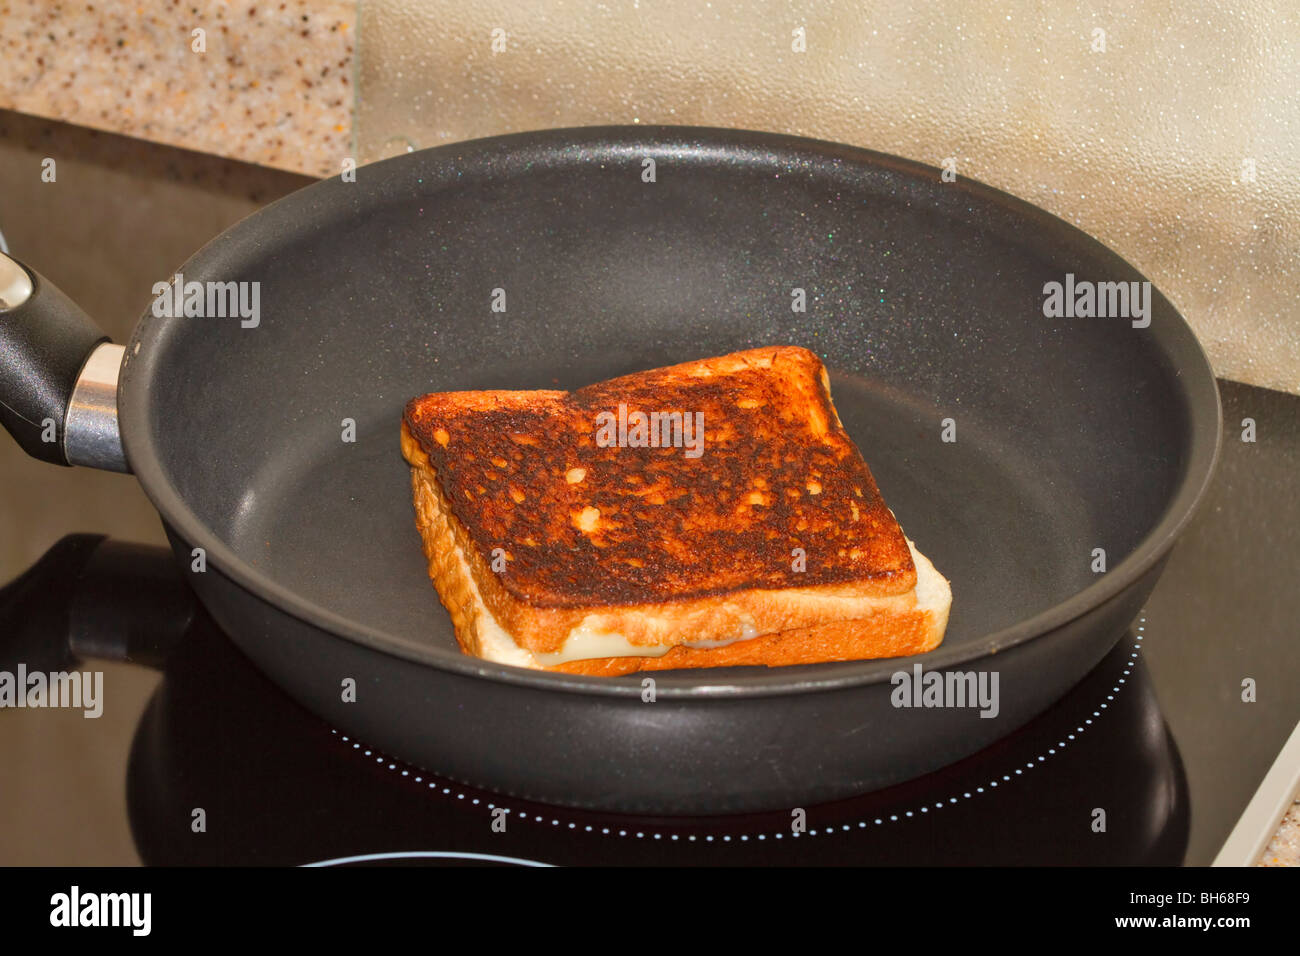 Grilled cheese sandwich in frying pan - Stock Image